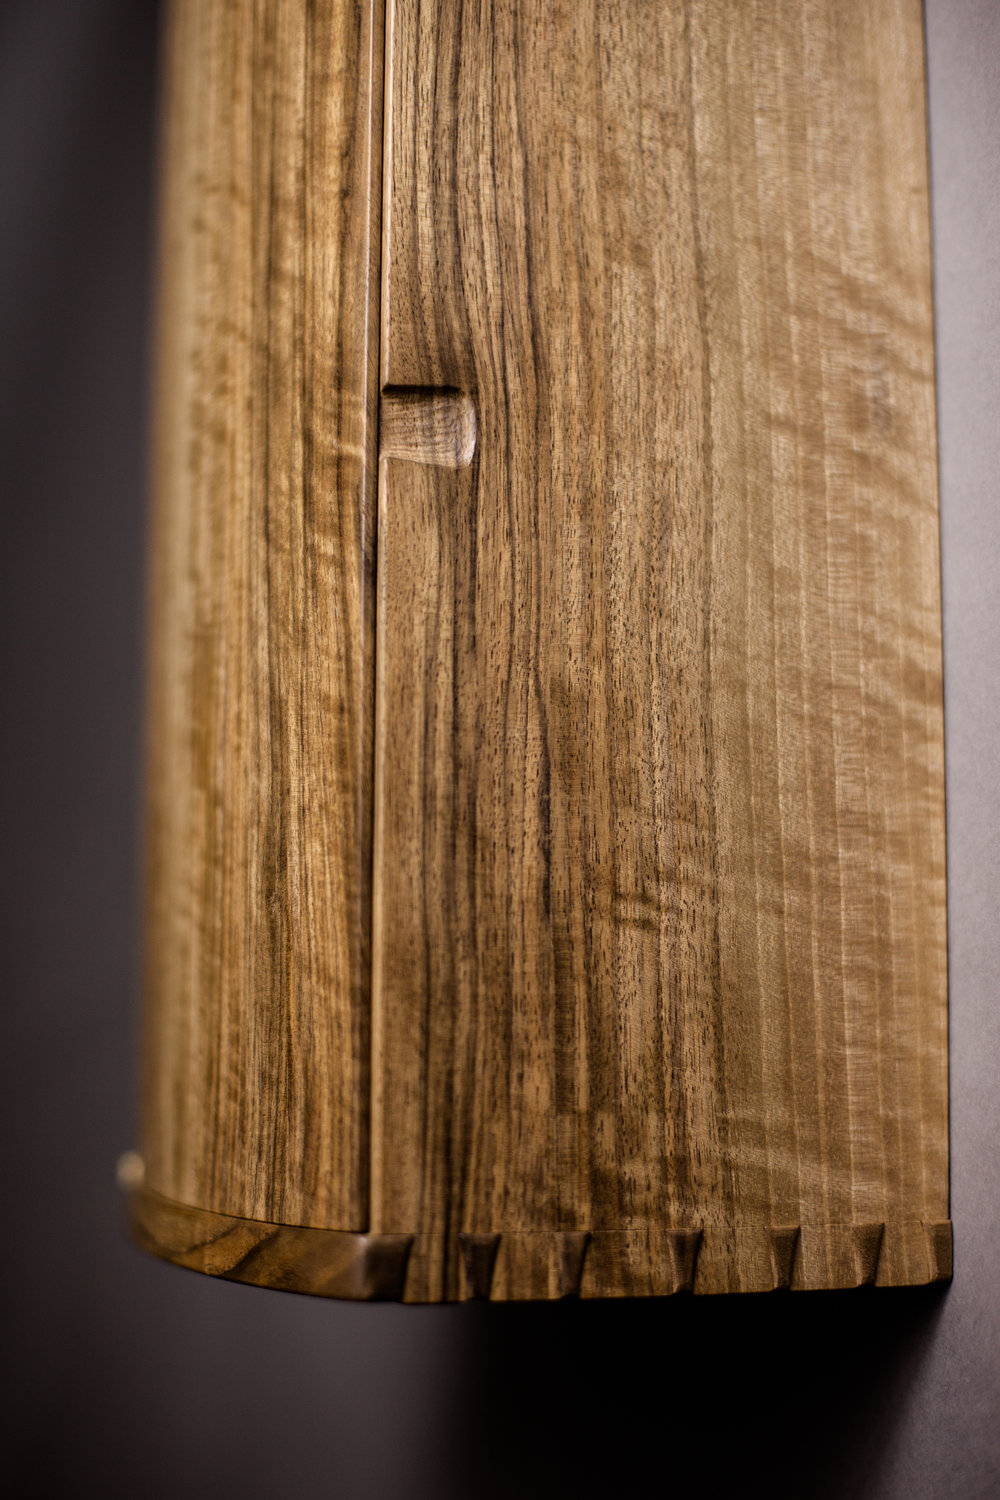 Detail proud and pillowed joinery of Upward Spiral Cabinet by Jessie Lafieur  Photography by Tim Andries